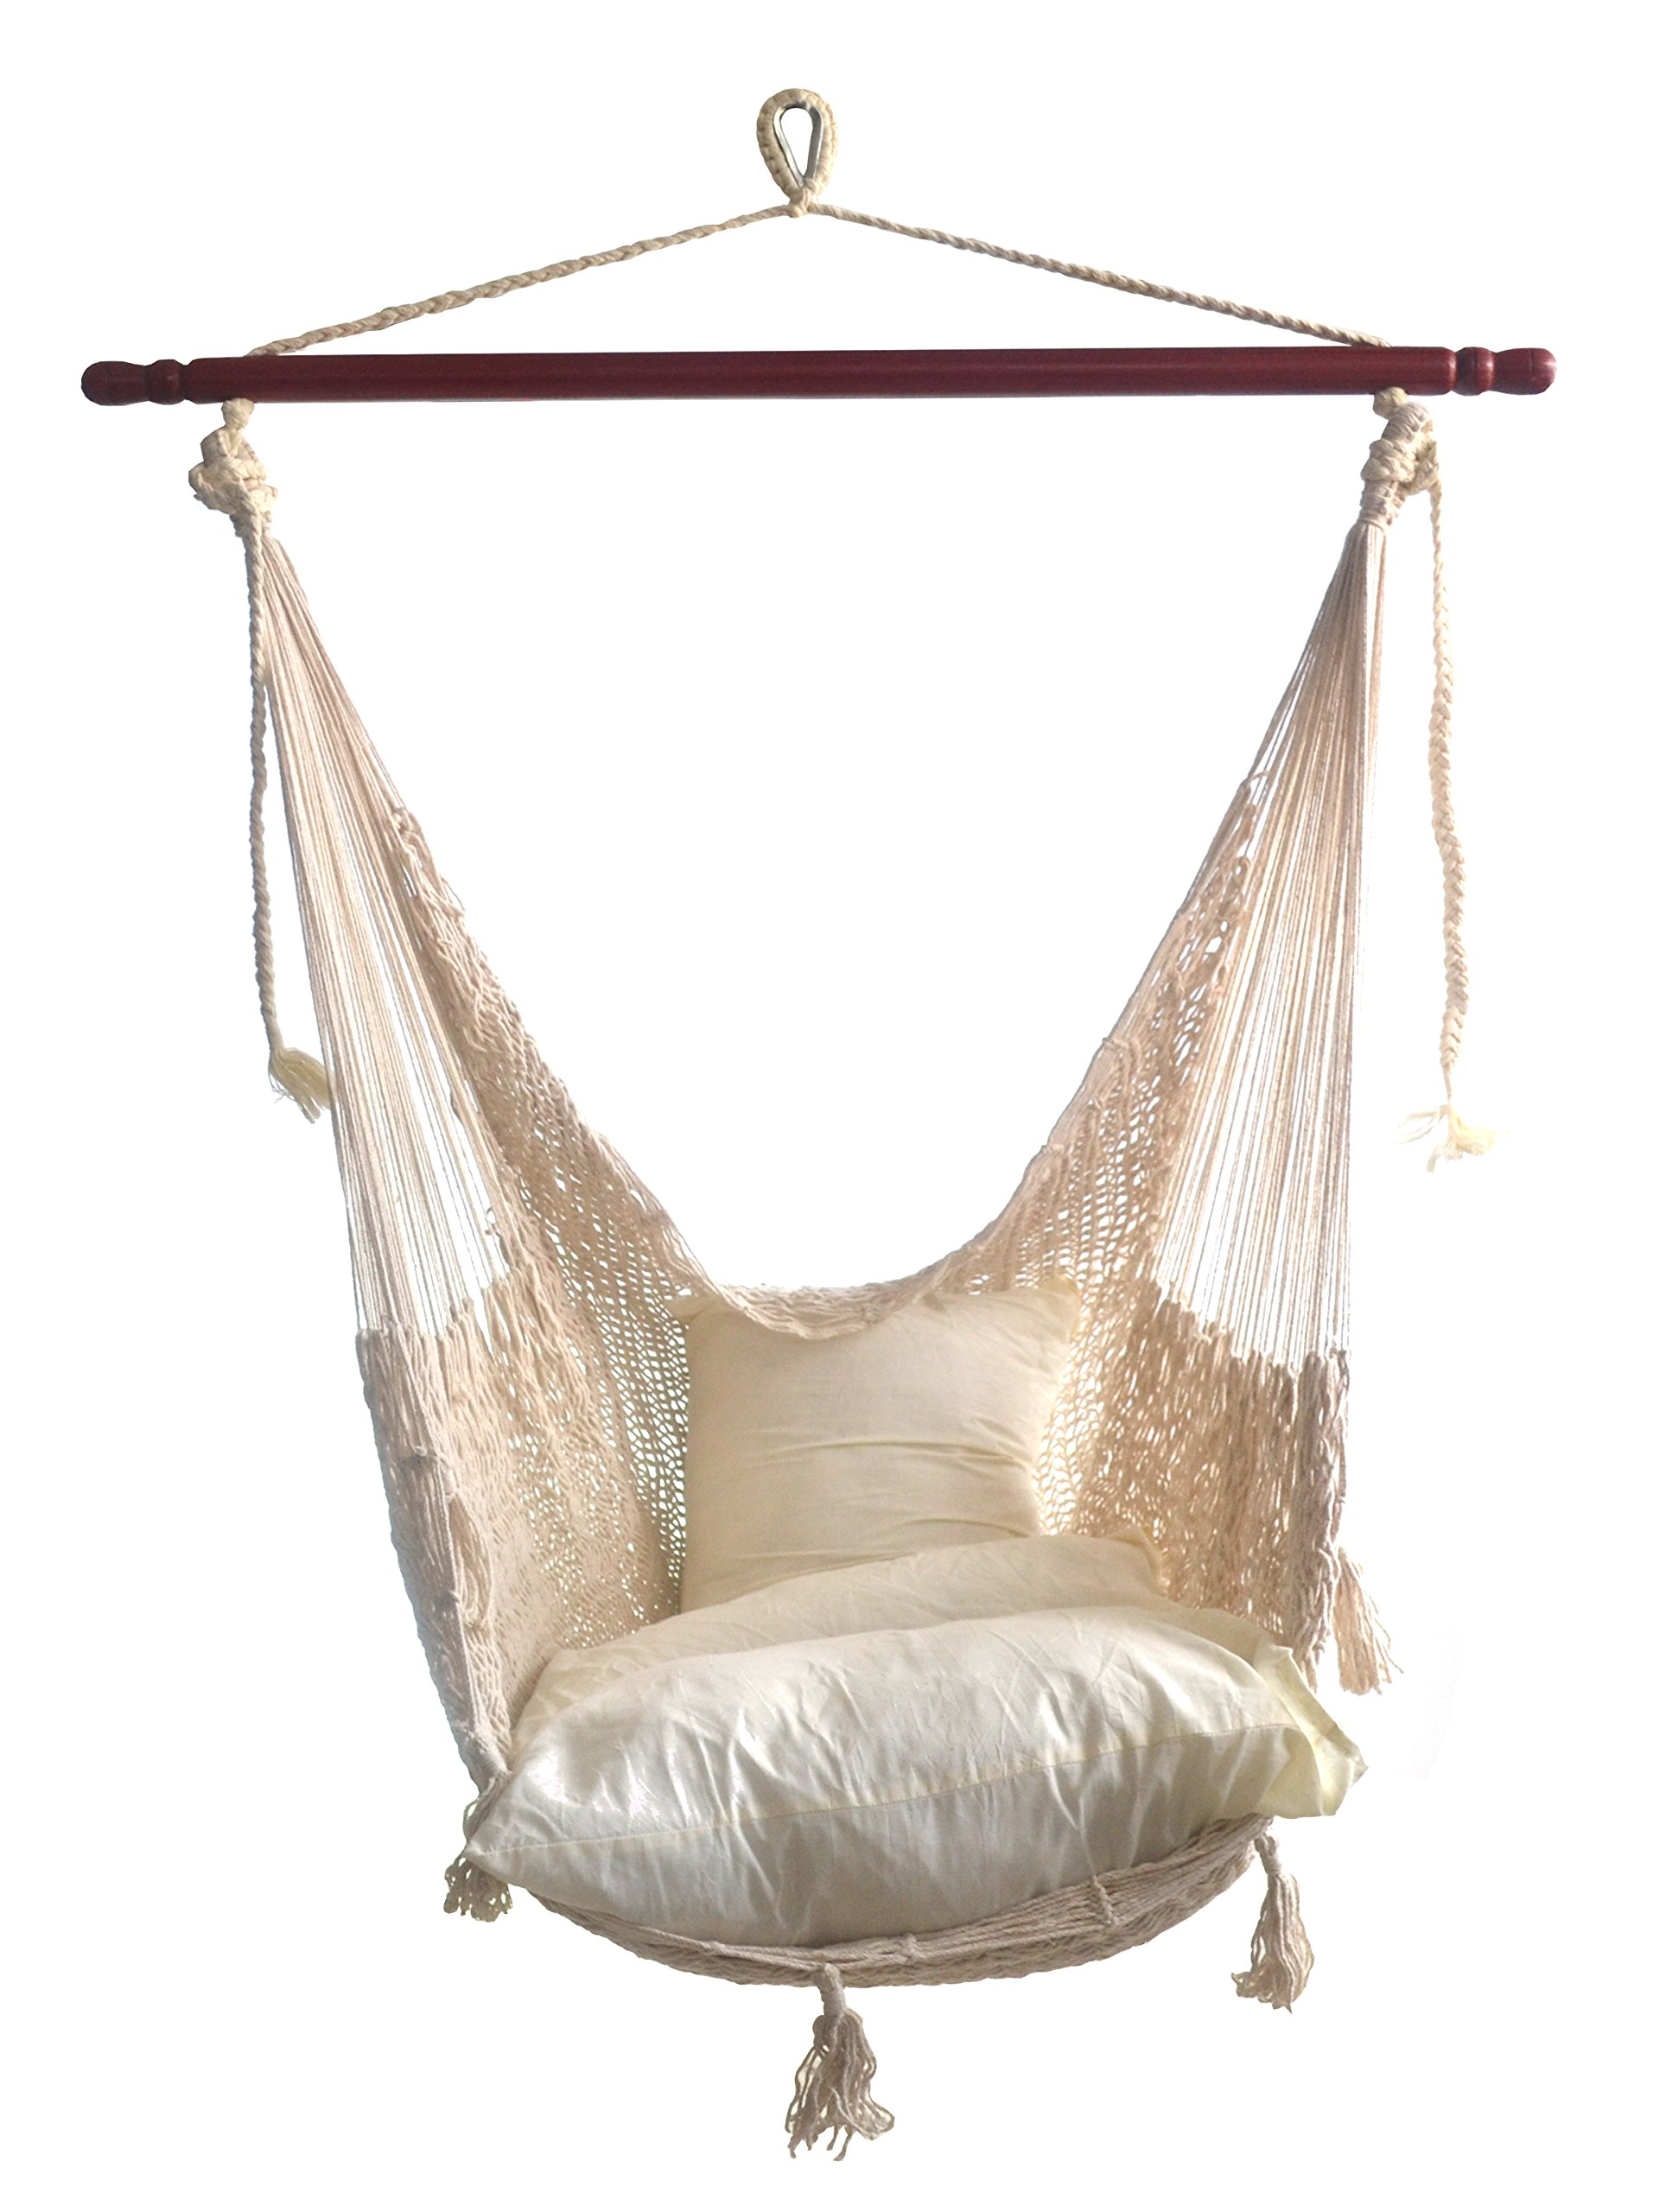 Hammocks Rada - CHAIR HAMMOCK DELUXE (Natural) - - THE BEST CHAIR HAMMOCK MAYAN STYLE , this Chair Hammock is elegance, wider, comfy, soft, make with natural cotton fibers - HIGH QUALITY, the Chair is make with tight weave using Thicker Strings in Cotton - RESISTANT, the Cotton Thicker Strings make strong the Chair Hammock and the Nylon Rope is make with Nylon Strings offering strength in all its components - patio-furniture, patio, hammocks - 816cd oIAtL -